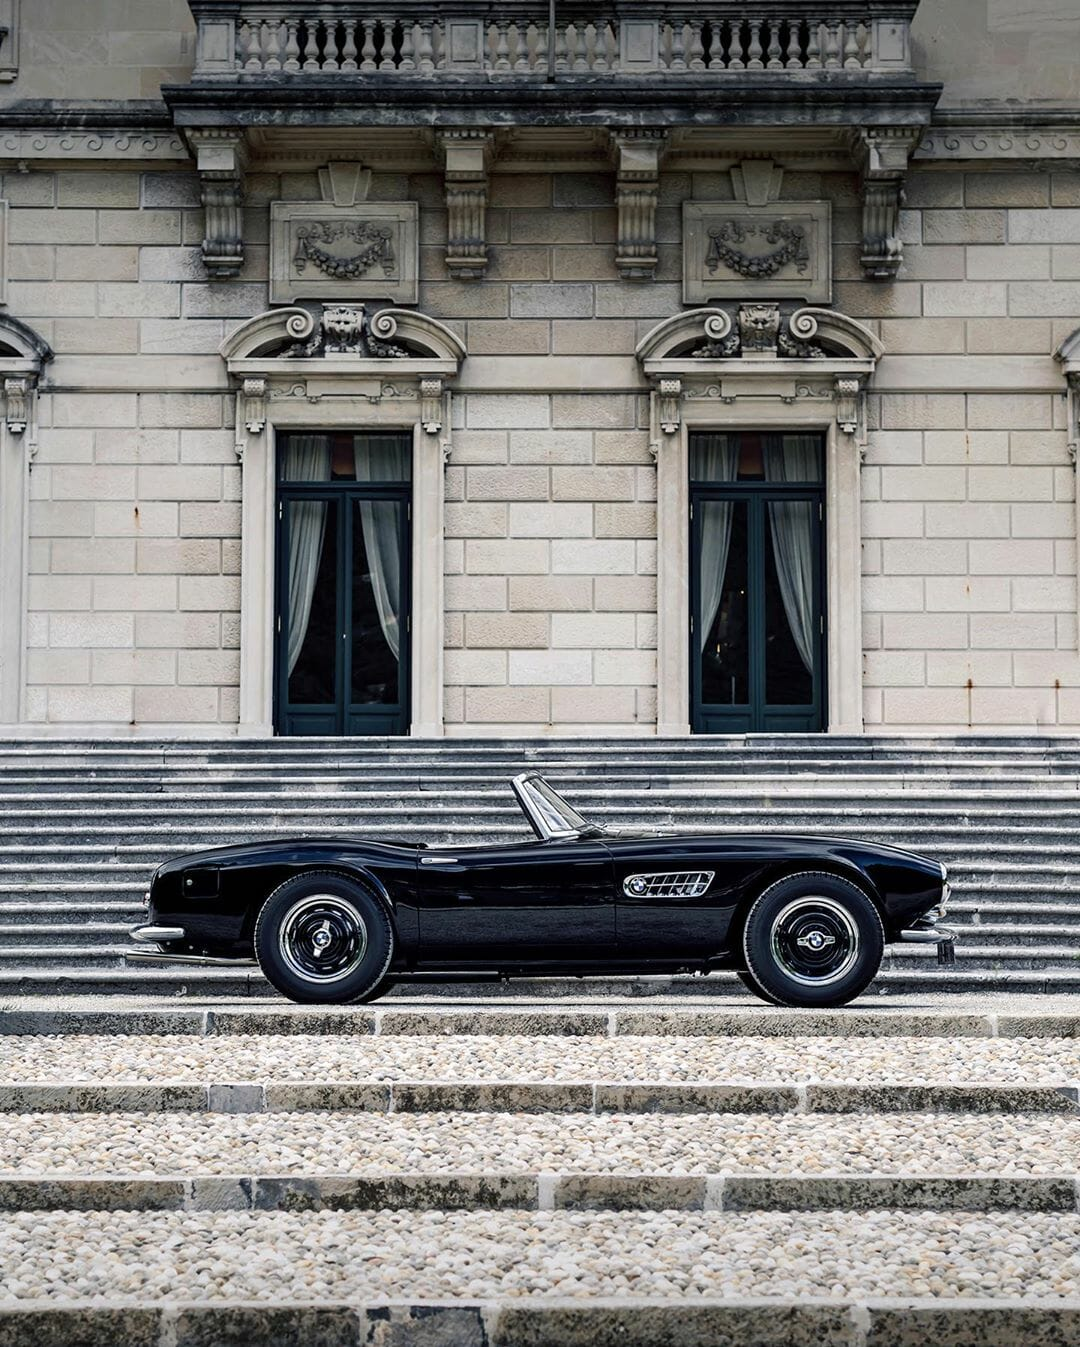 BMW 507 by IG @kenozache - 0